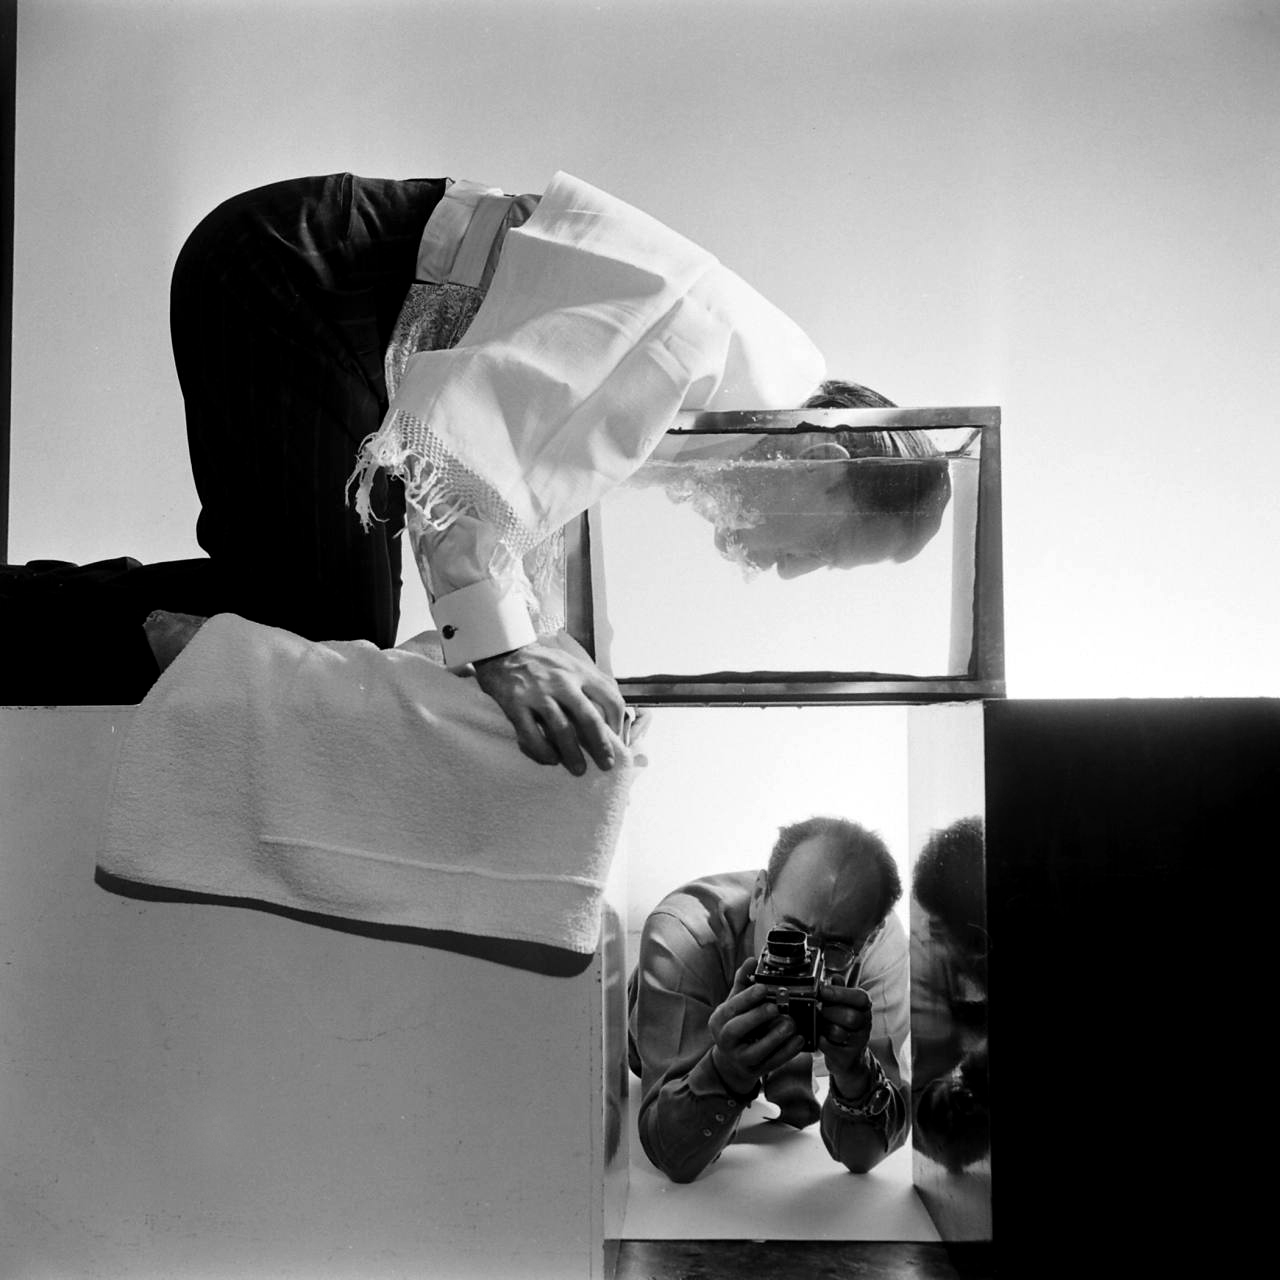 philippe-halsman-looks-at+salvador-dali-1954